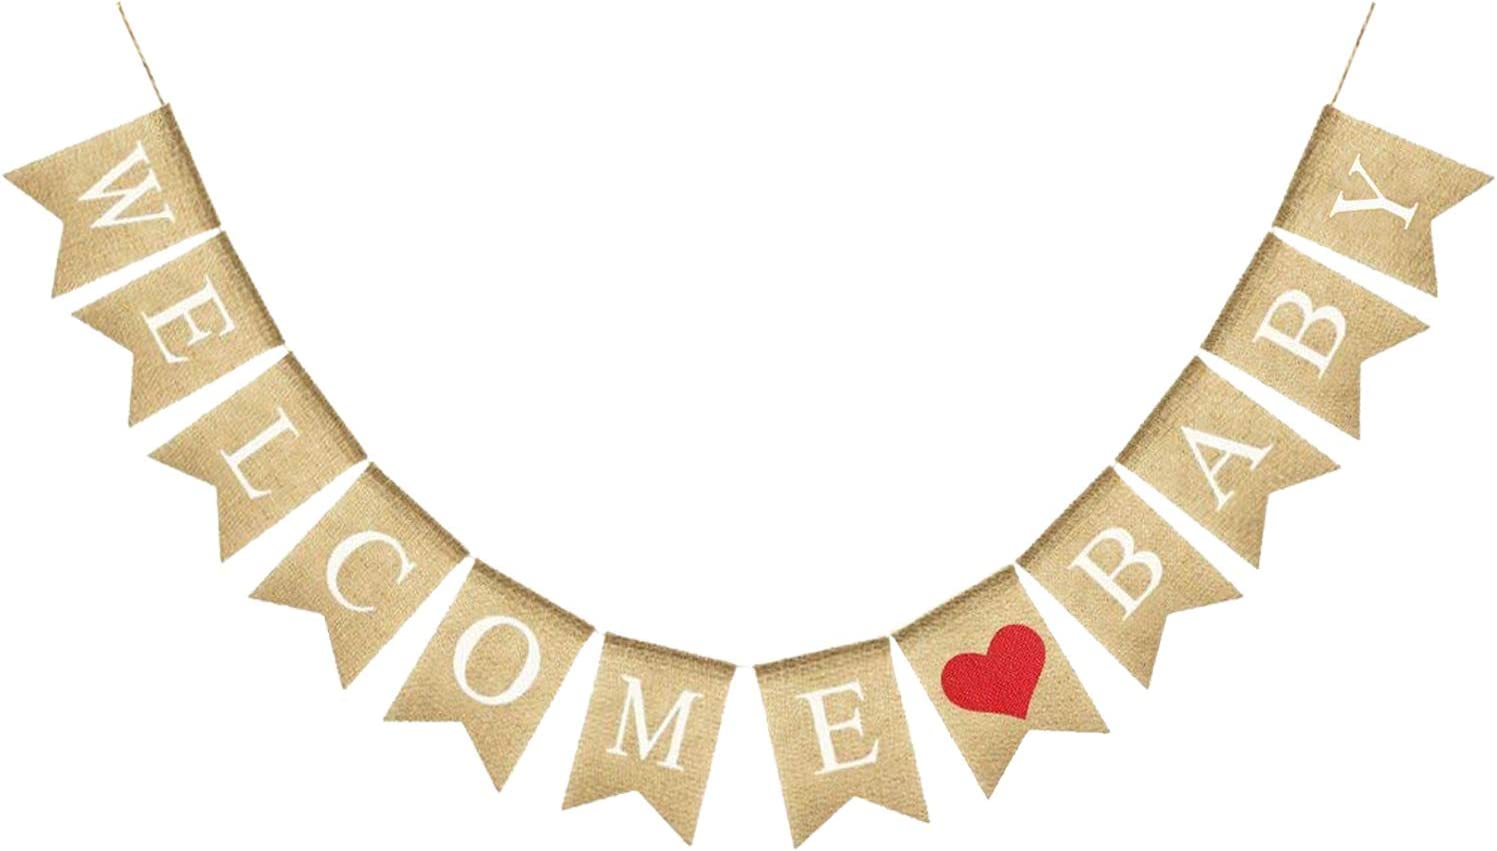 Real Burlap Welcome Baby Banner – Great For Gender Neutral Baby Shower Decor| Gender Reveal Party Decorations Supplies, PhotoBooth and Dessert Table Decorations, Mantle, Fireplace